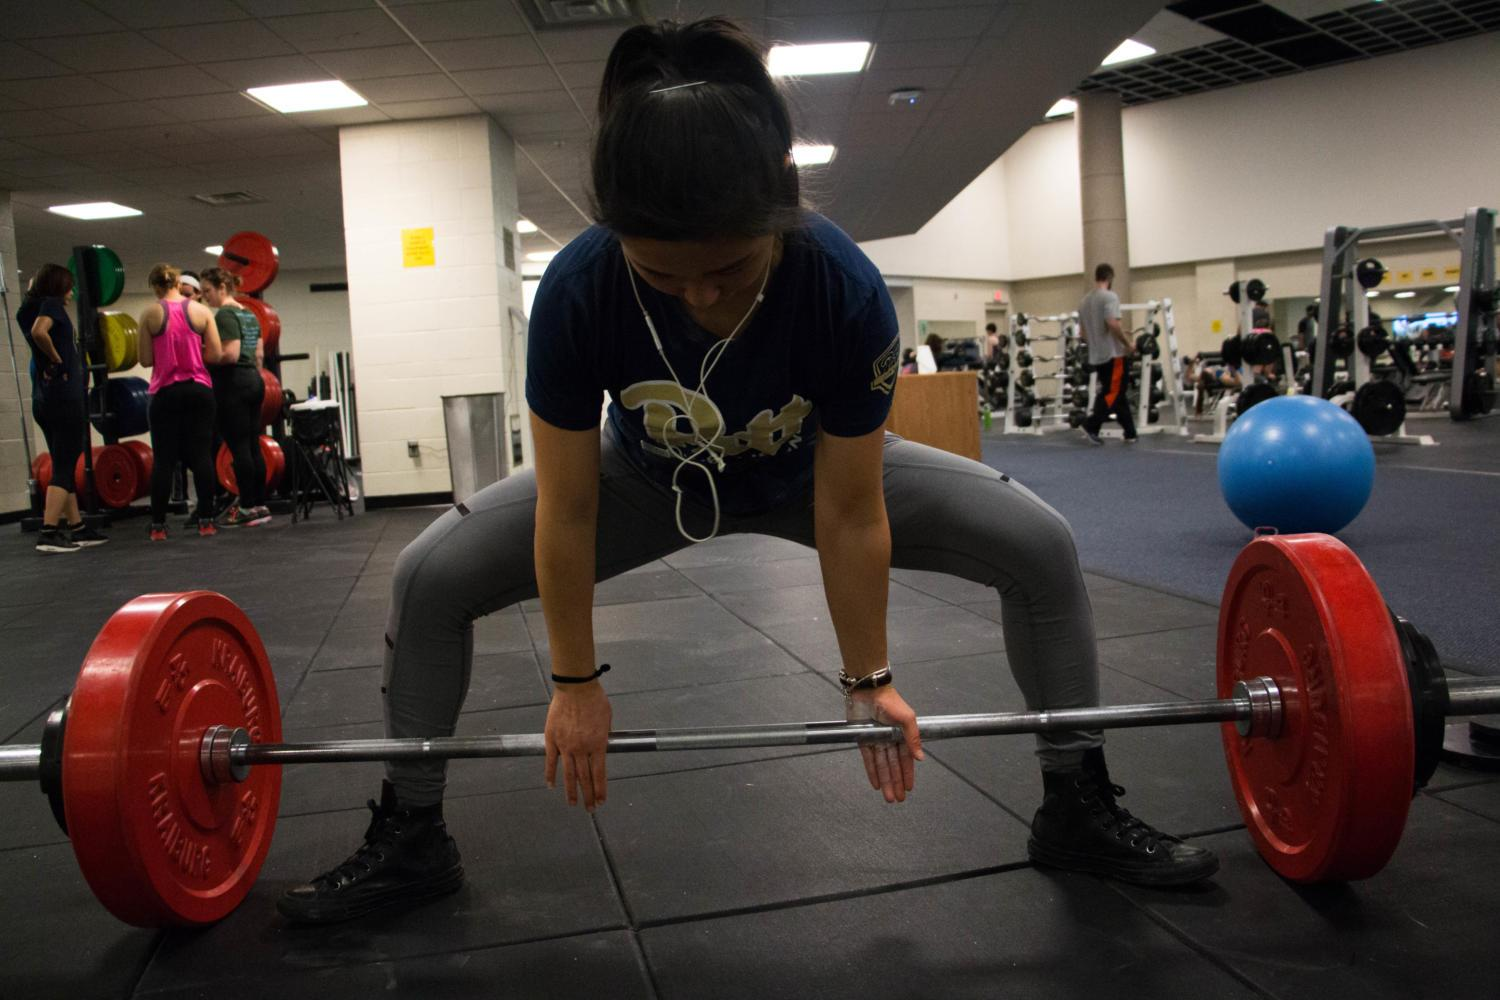 Rui Tanimura, a senior nutrition major and founding member of Pitt's club powerlifting team, trains for the deadlift. (Photo by Christian Snyder | Multimedia Editor)